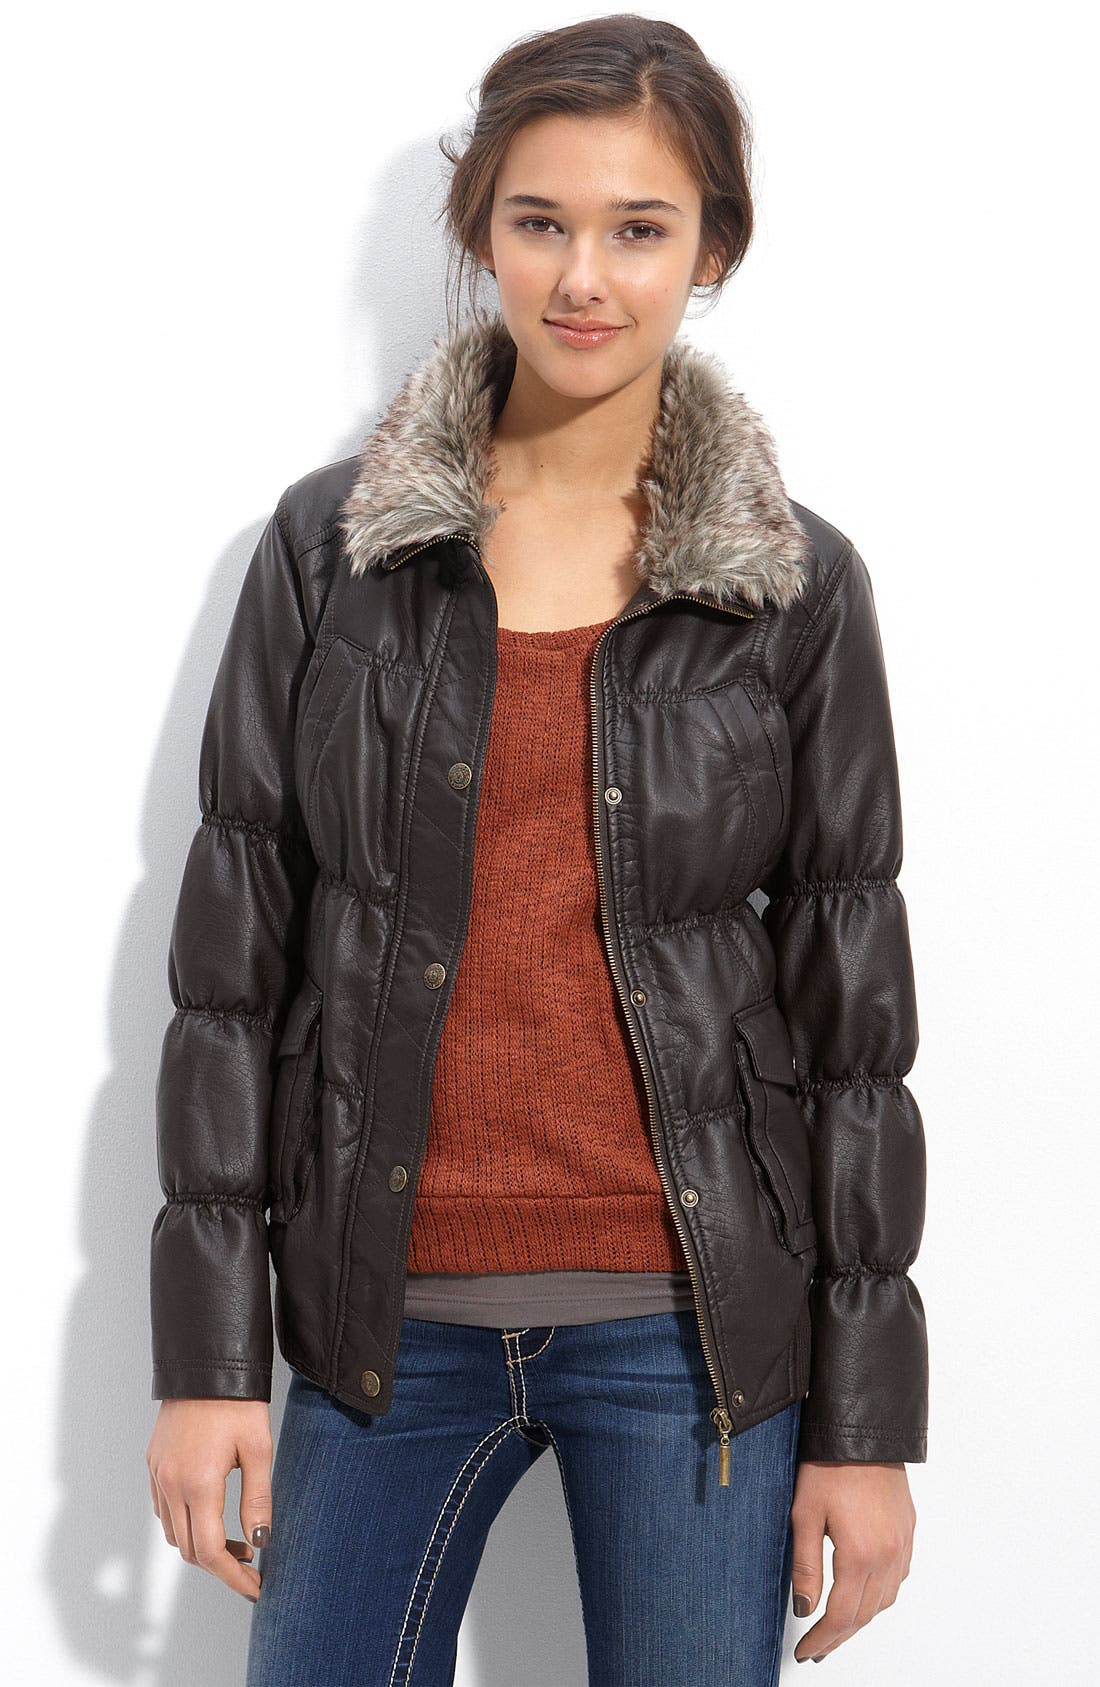 Alternate Image 1 Selected - Dollhouse Faux Leather Puffer Jacket with Faux Fur Collar (Juniors)